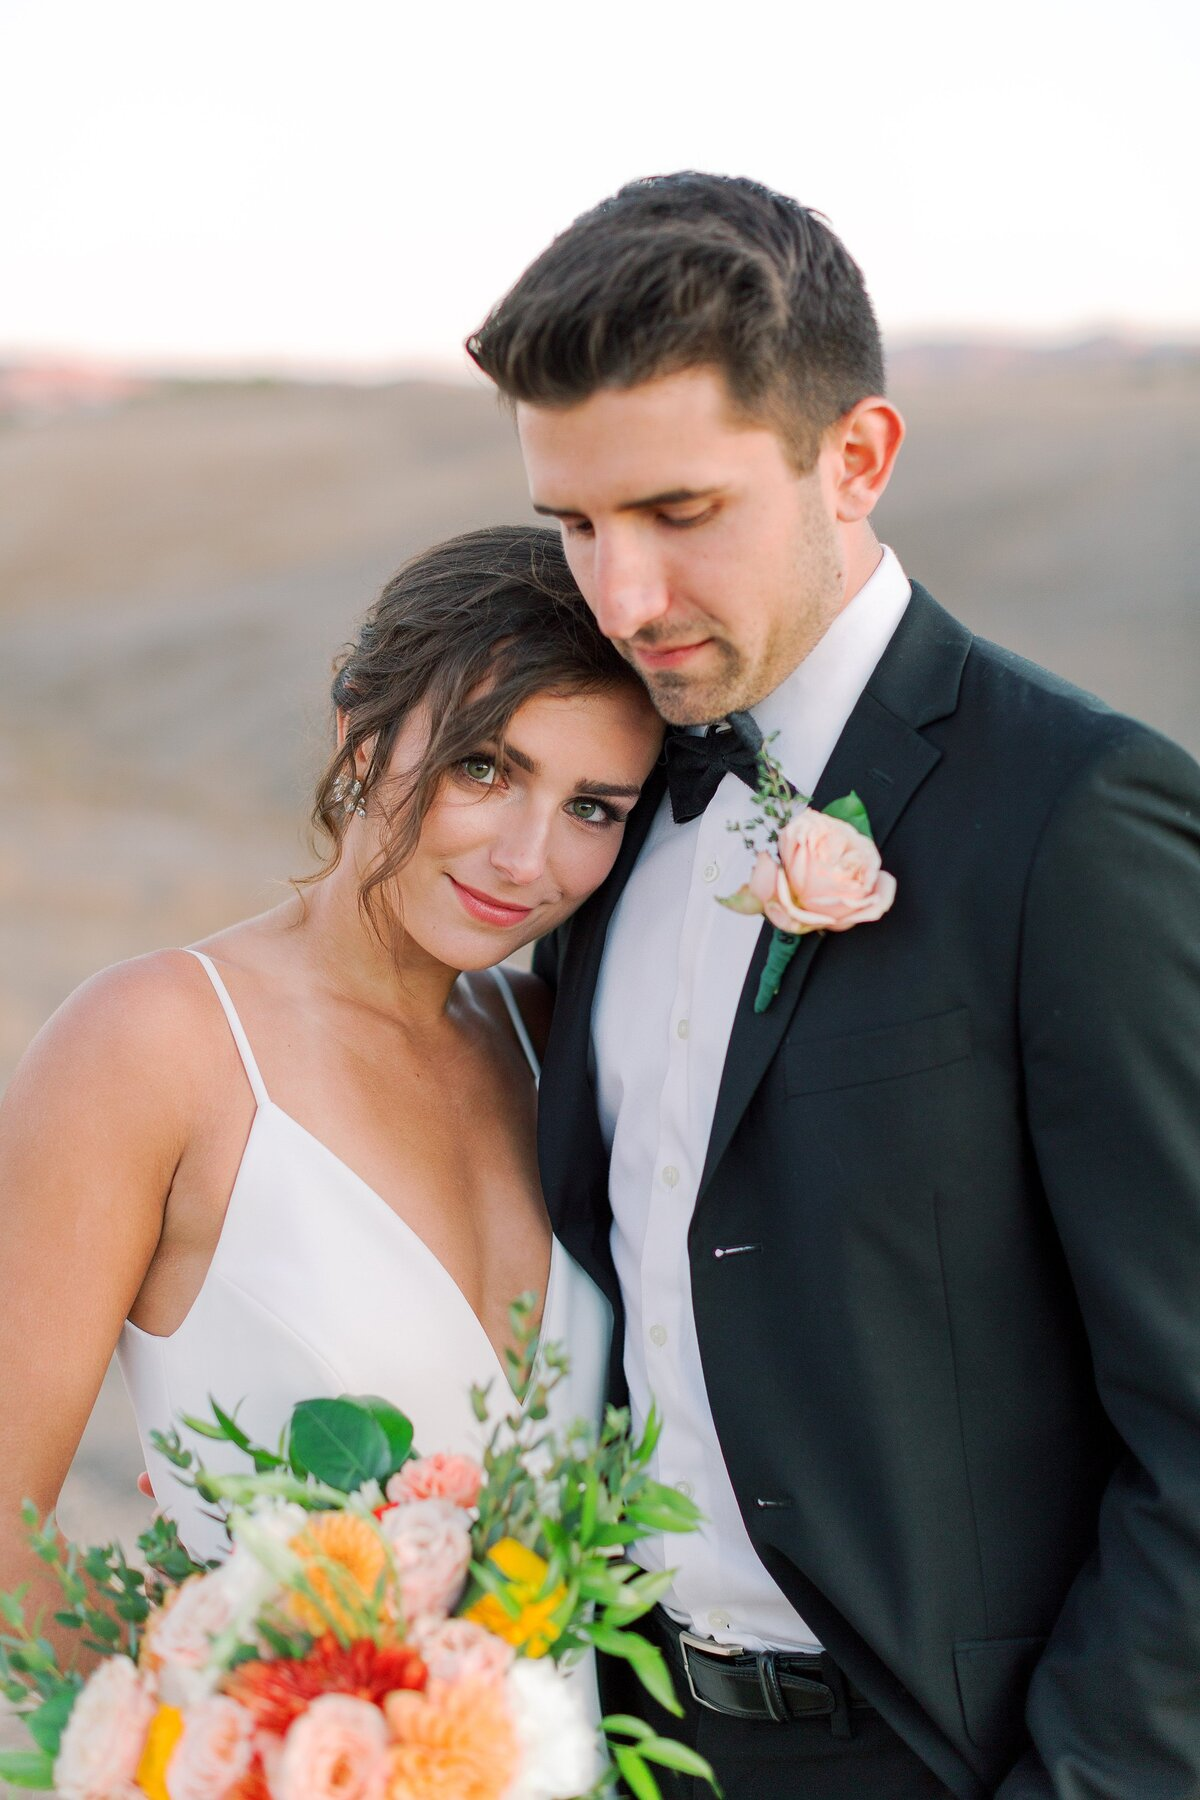 20191020 Modern Elegance Wedding Styled Shoot at Three Steves Winery Livermore_Bethany Picone Photography-214_WEB